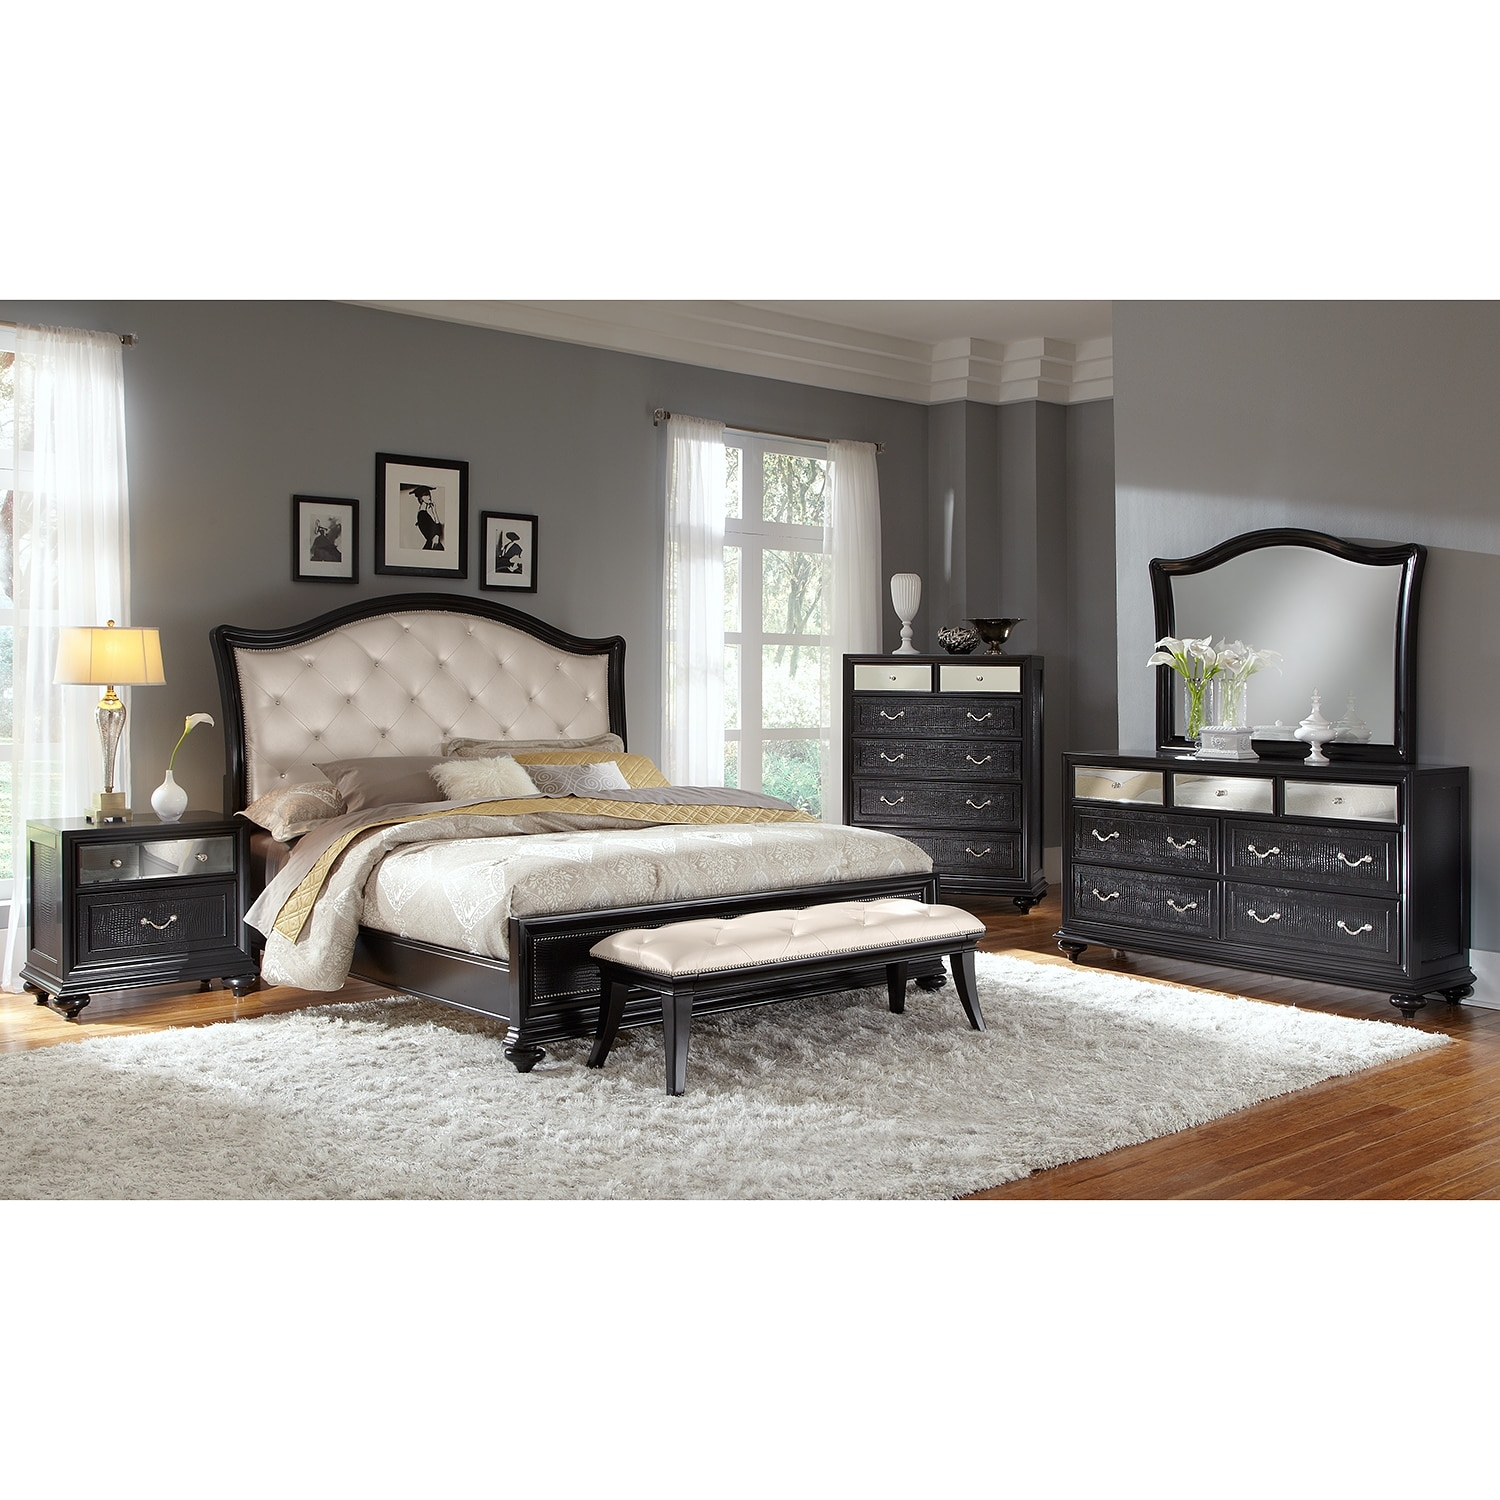 Marilyn Queen Bed - Ebony